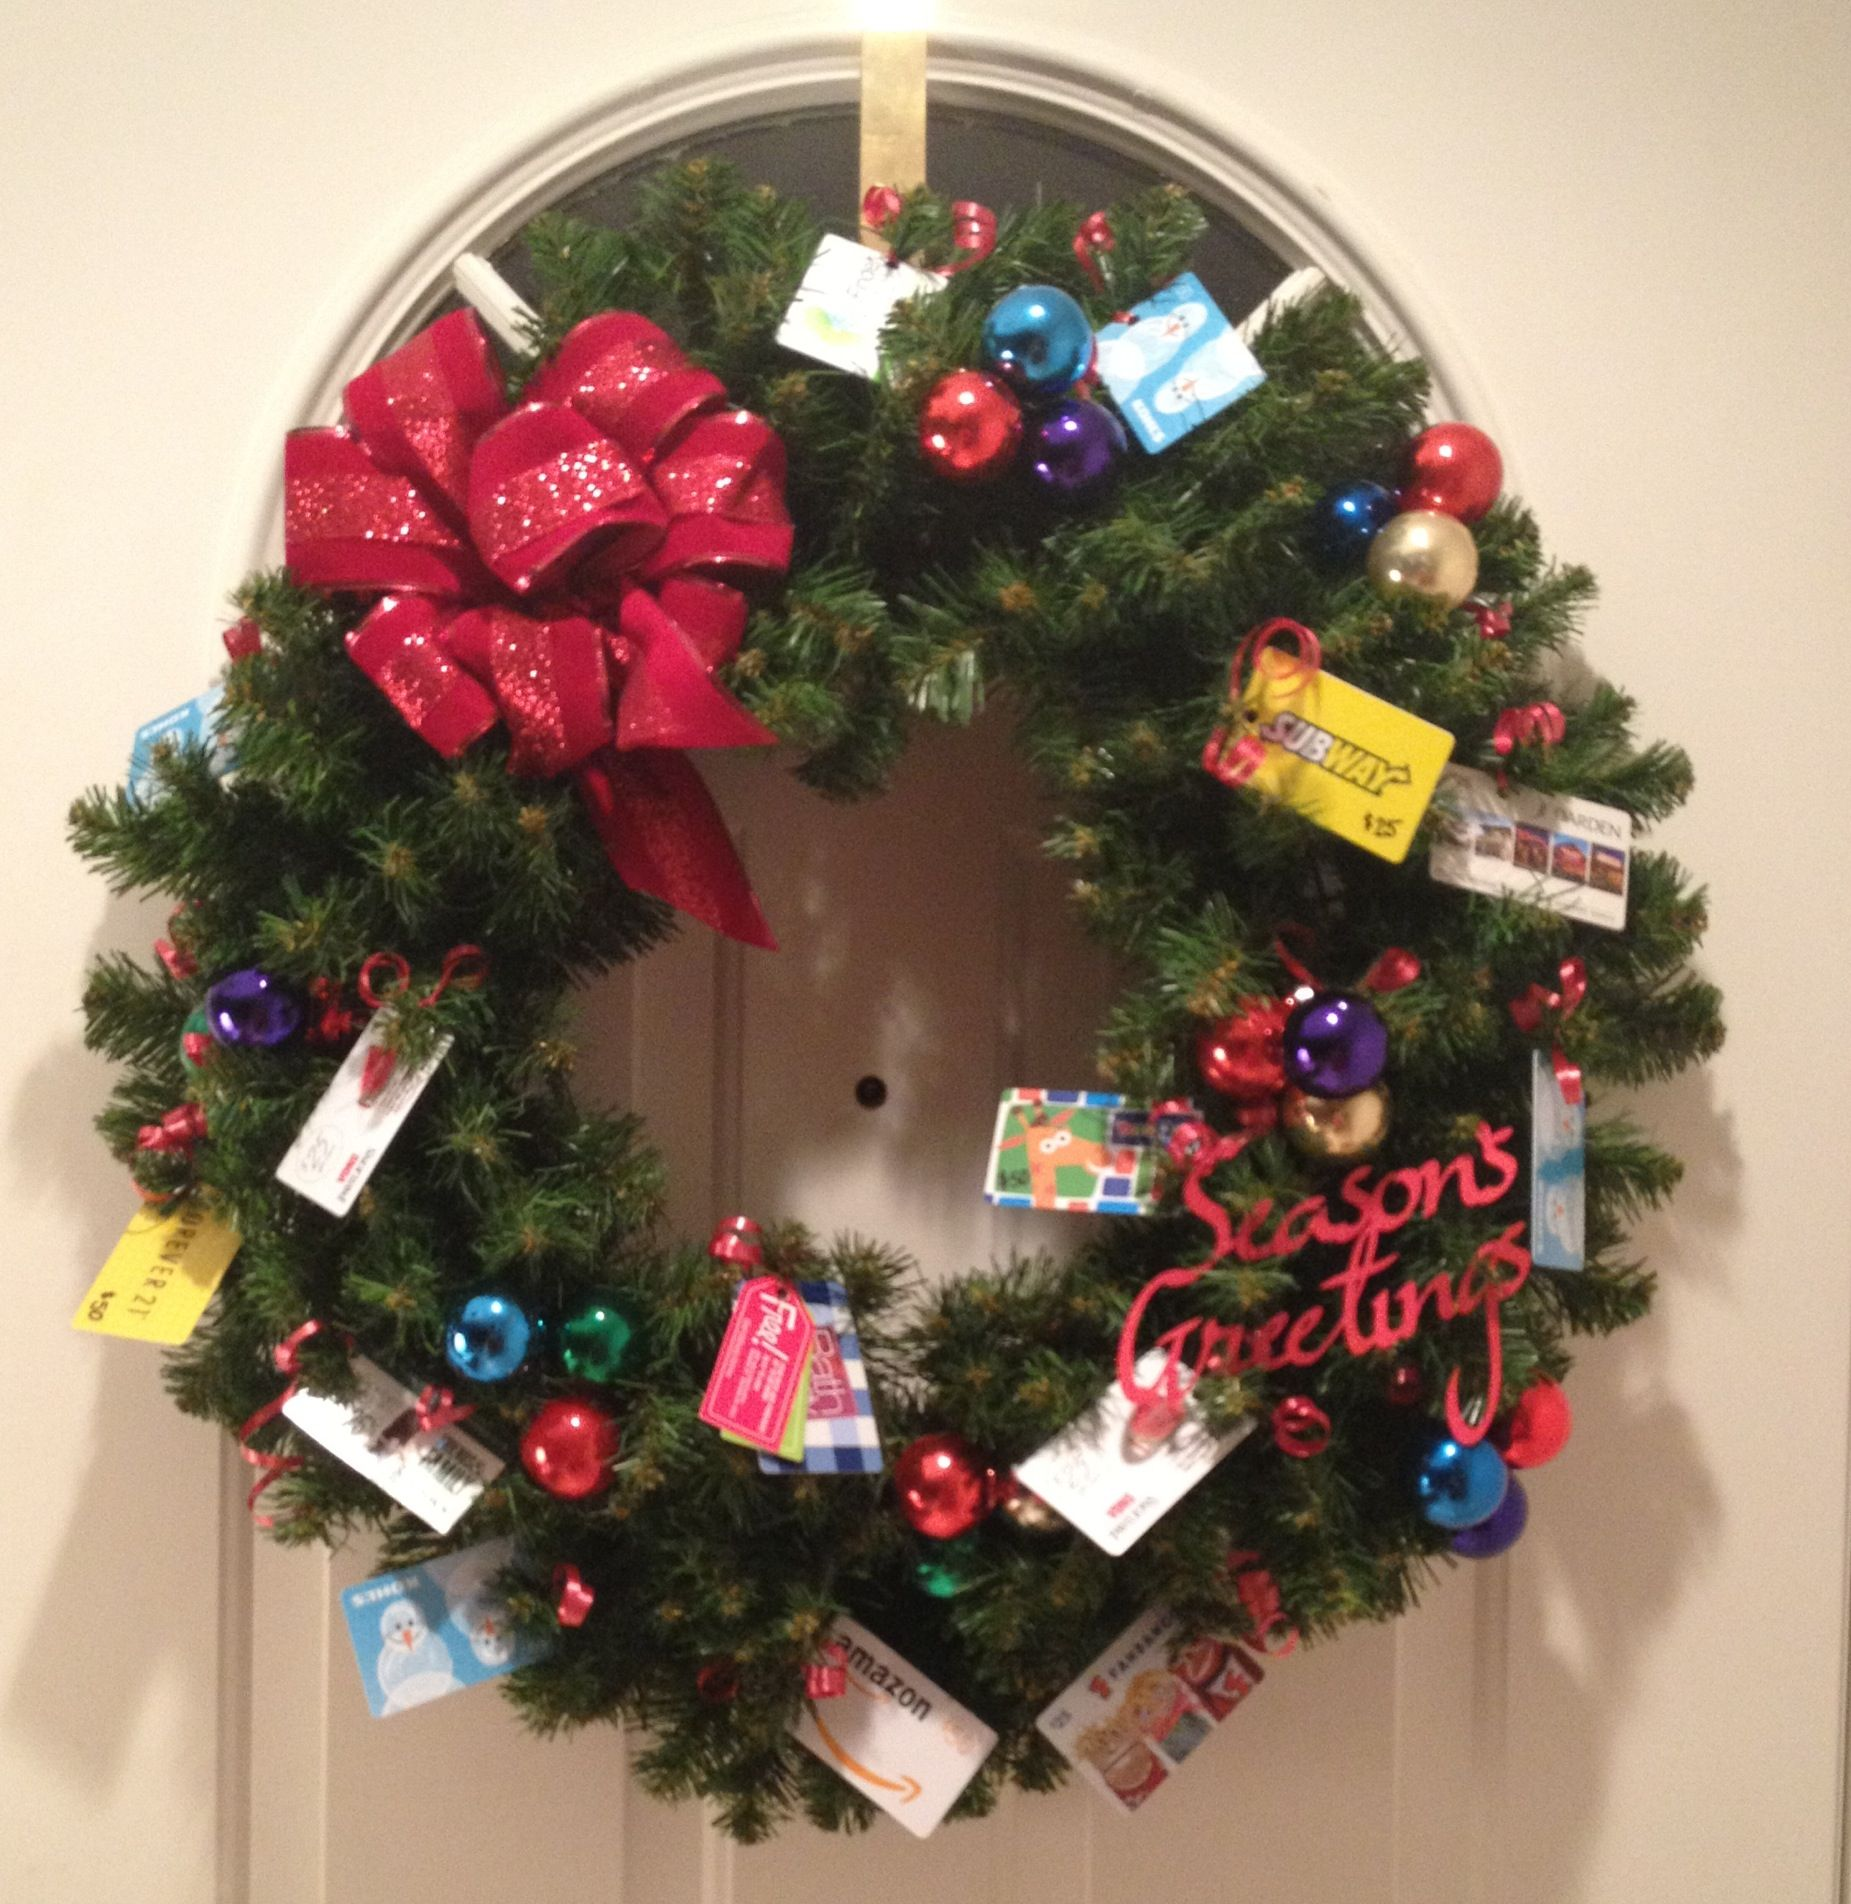 Gift card tree ideas pinterest - Gift Card Wreath For Breaking Entering Christmas